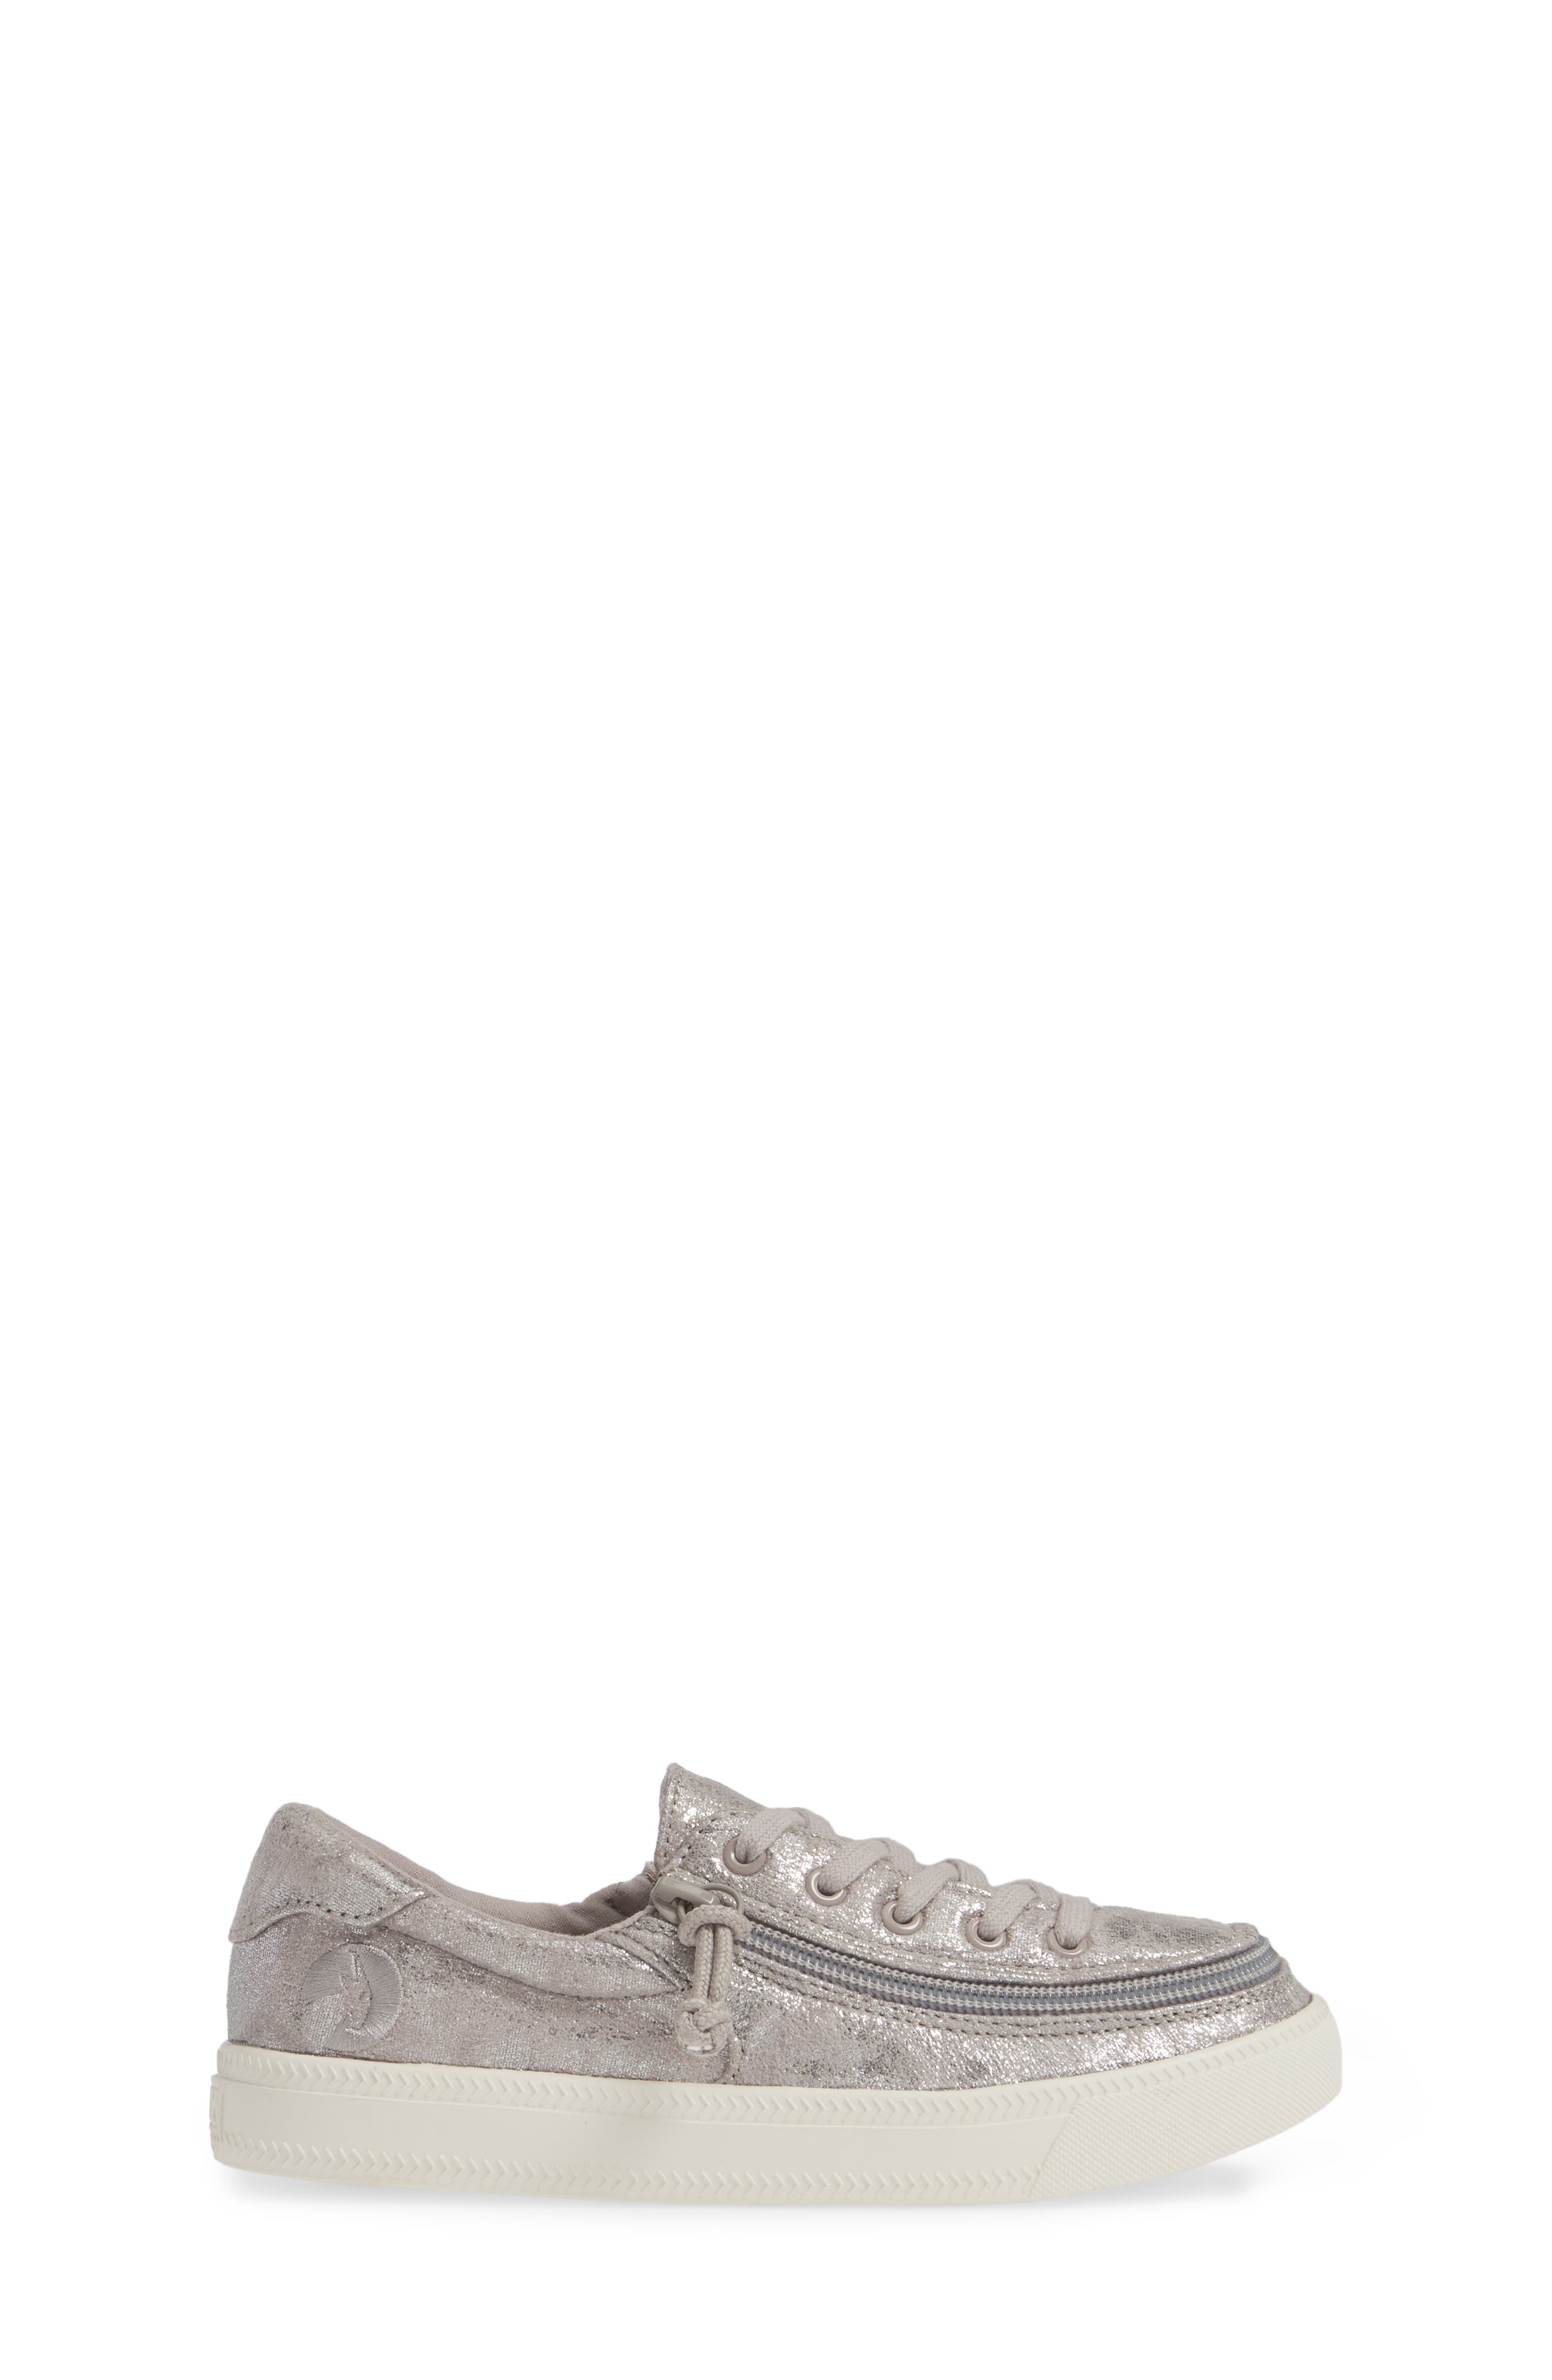 BILLY FOOTWEAR, Zip Around Low Top Sneaker, Alternate thumbnail 3, color, GREY METALLIC